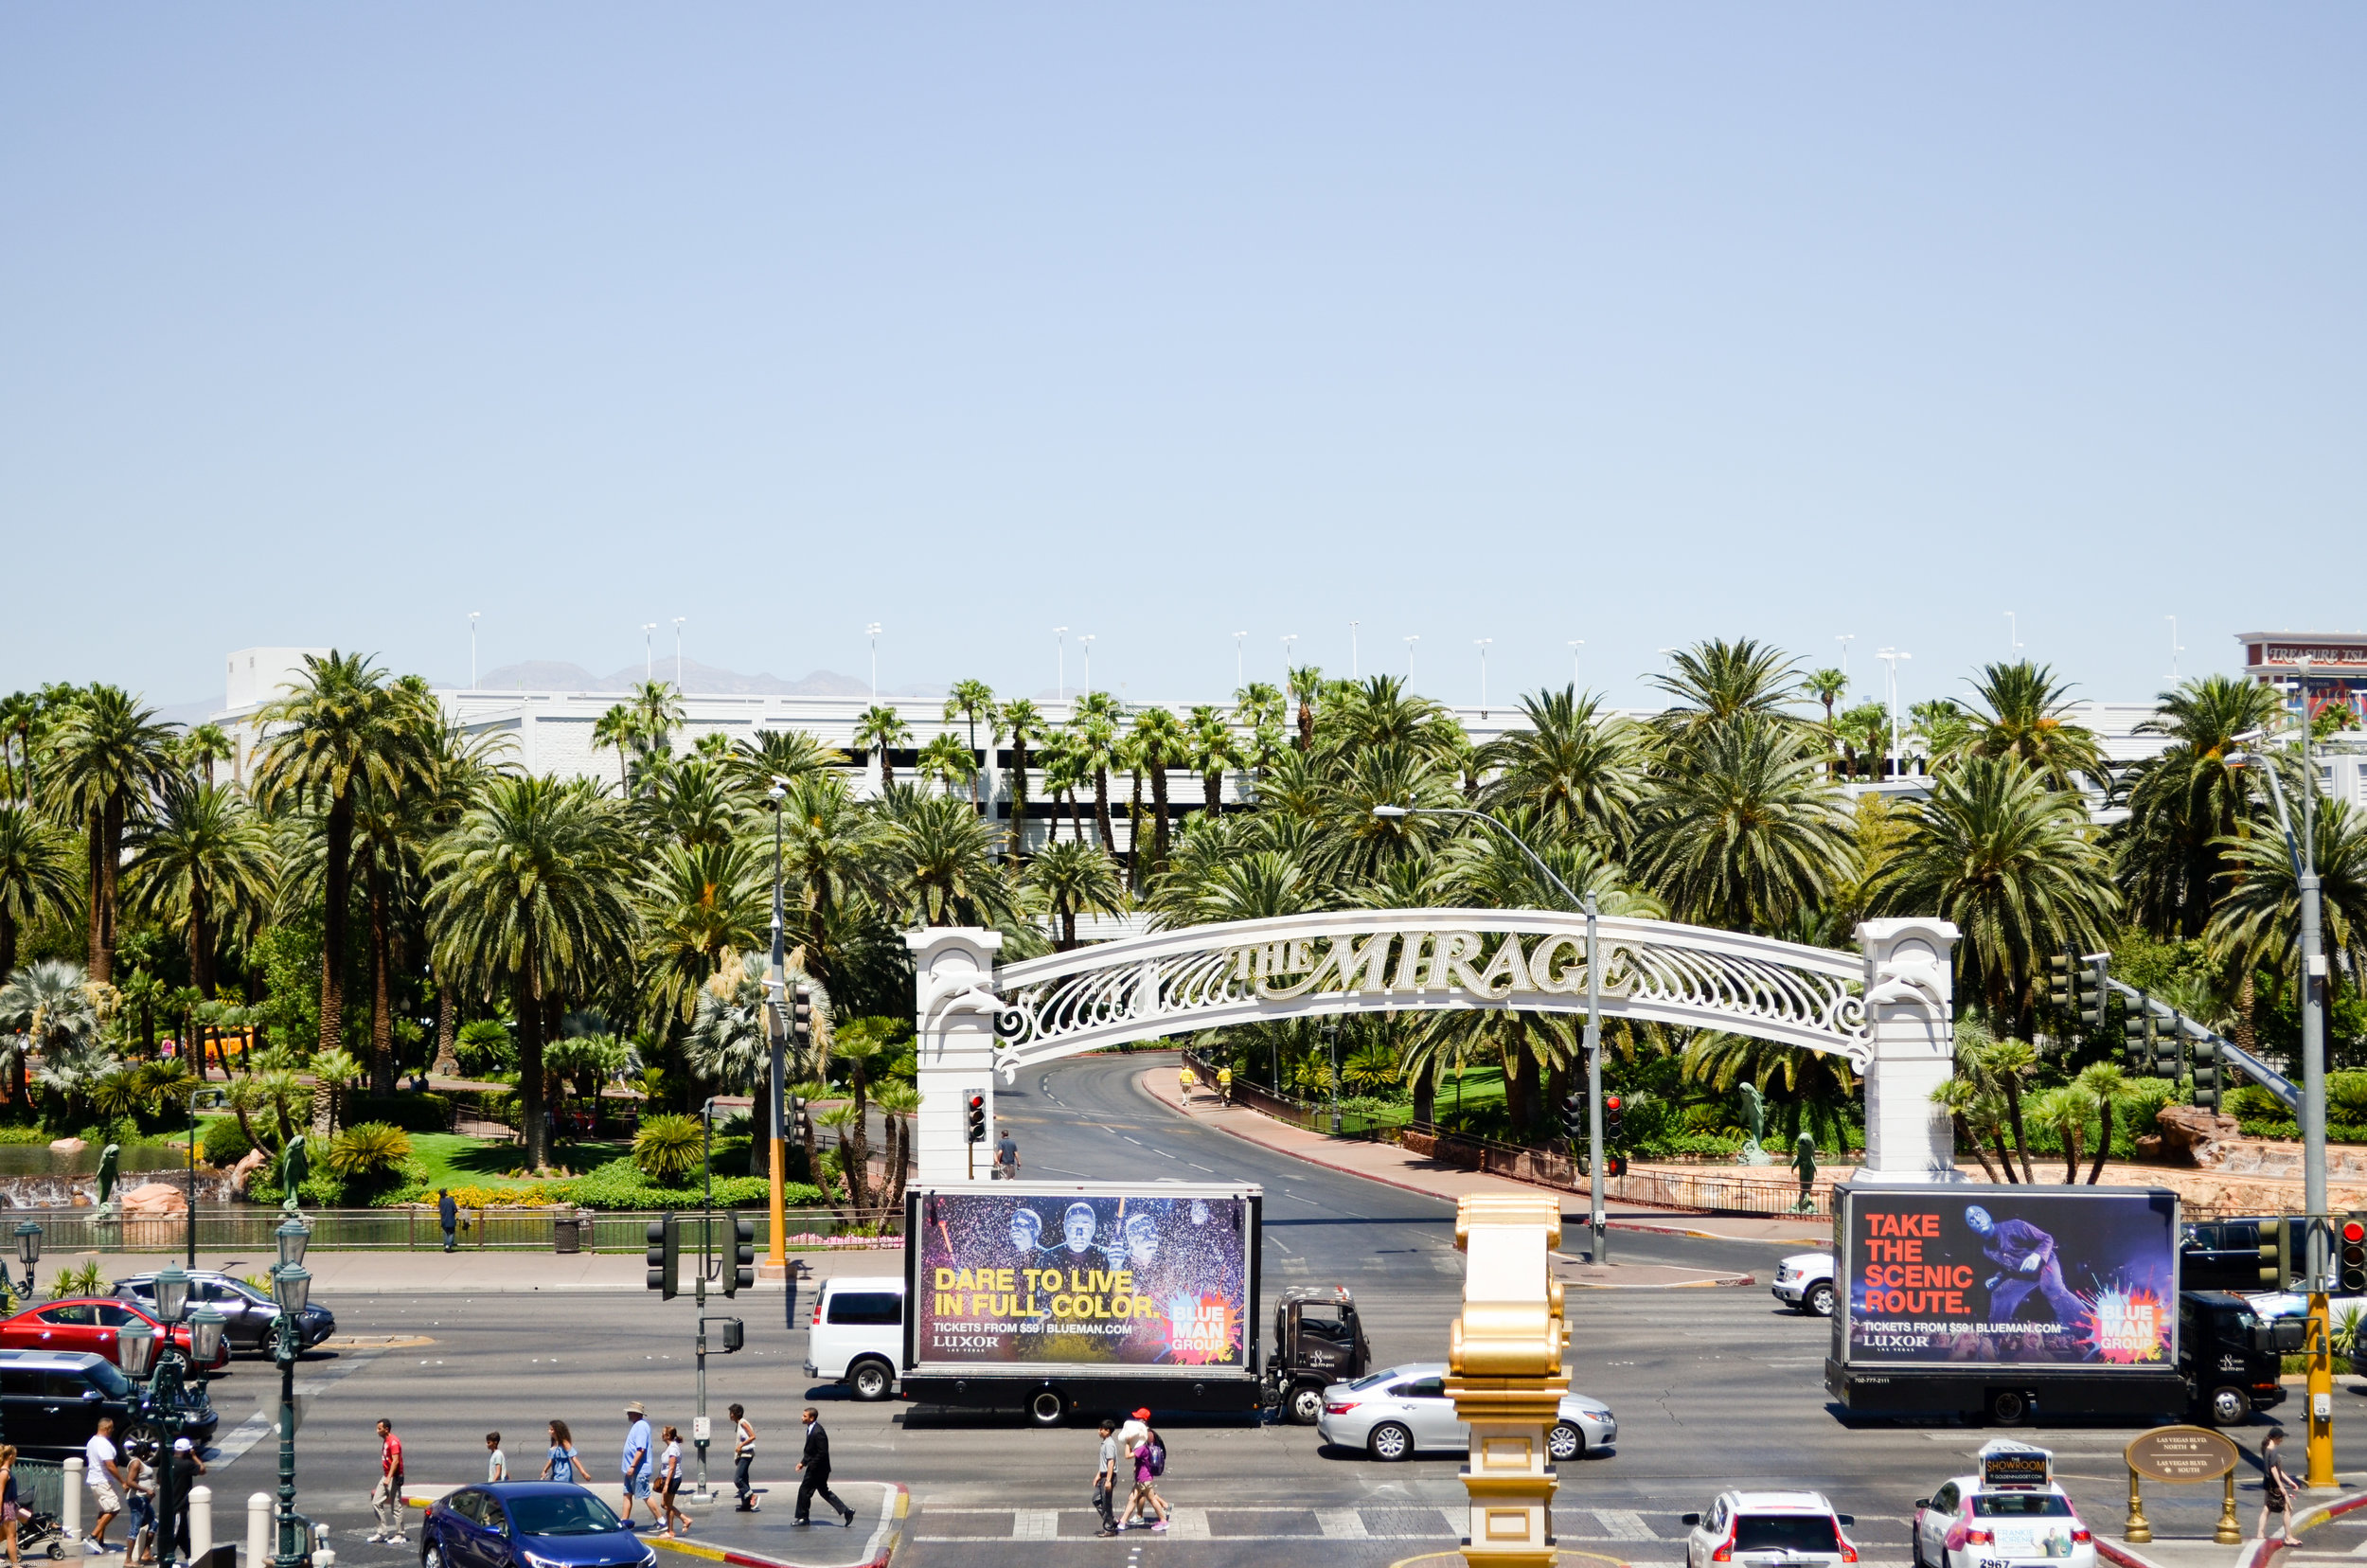 The main sign at the Mirage